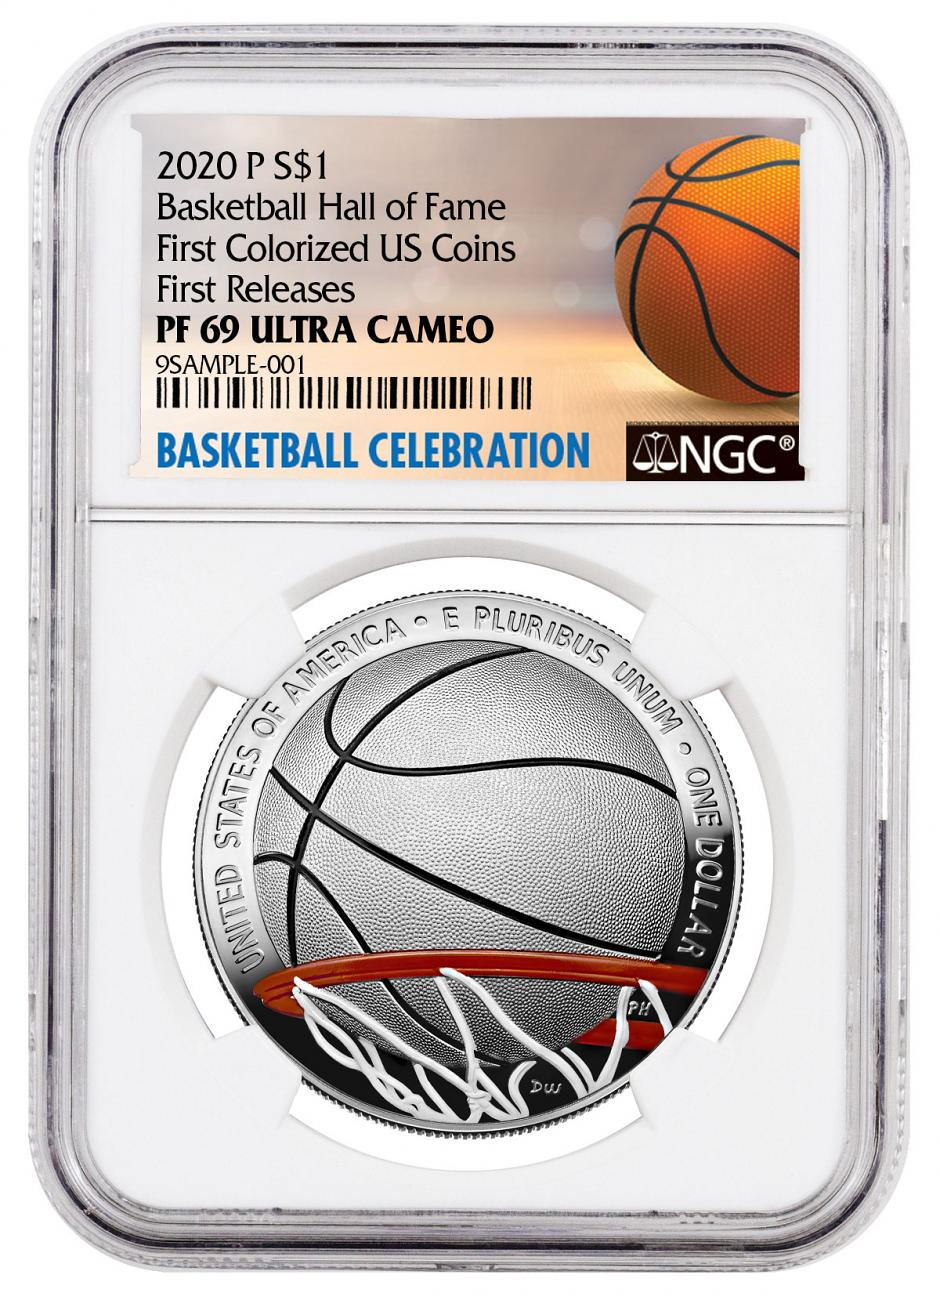 2020-P Basketball Hall of Fame Commemorative Silver Dollar Colorized Proof Coin NGC PF69 UC FR Basketball Celebration Label